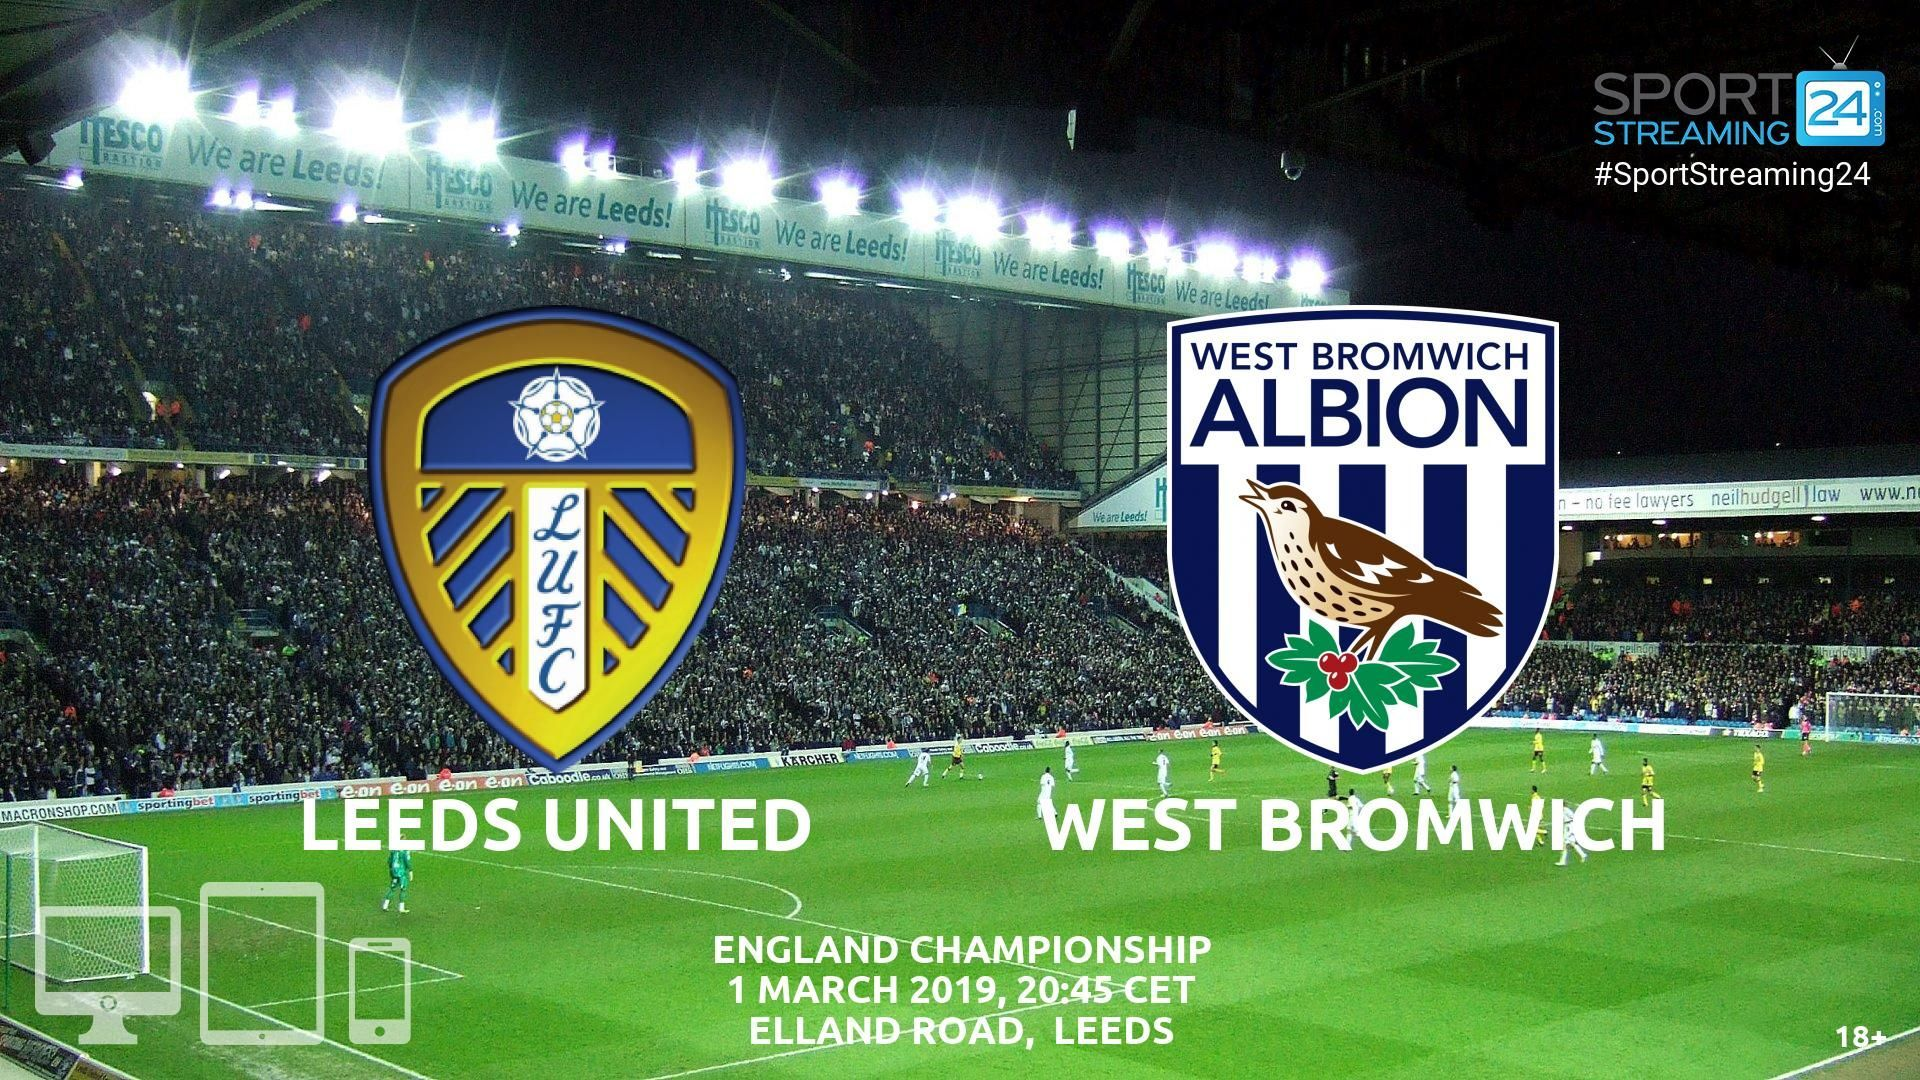 West Brom v Leeds Live Streaming Football West bromwich